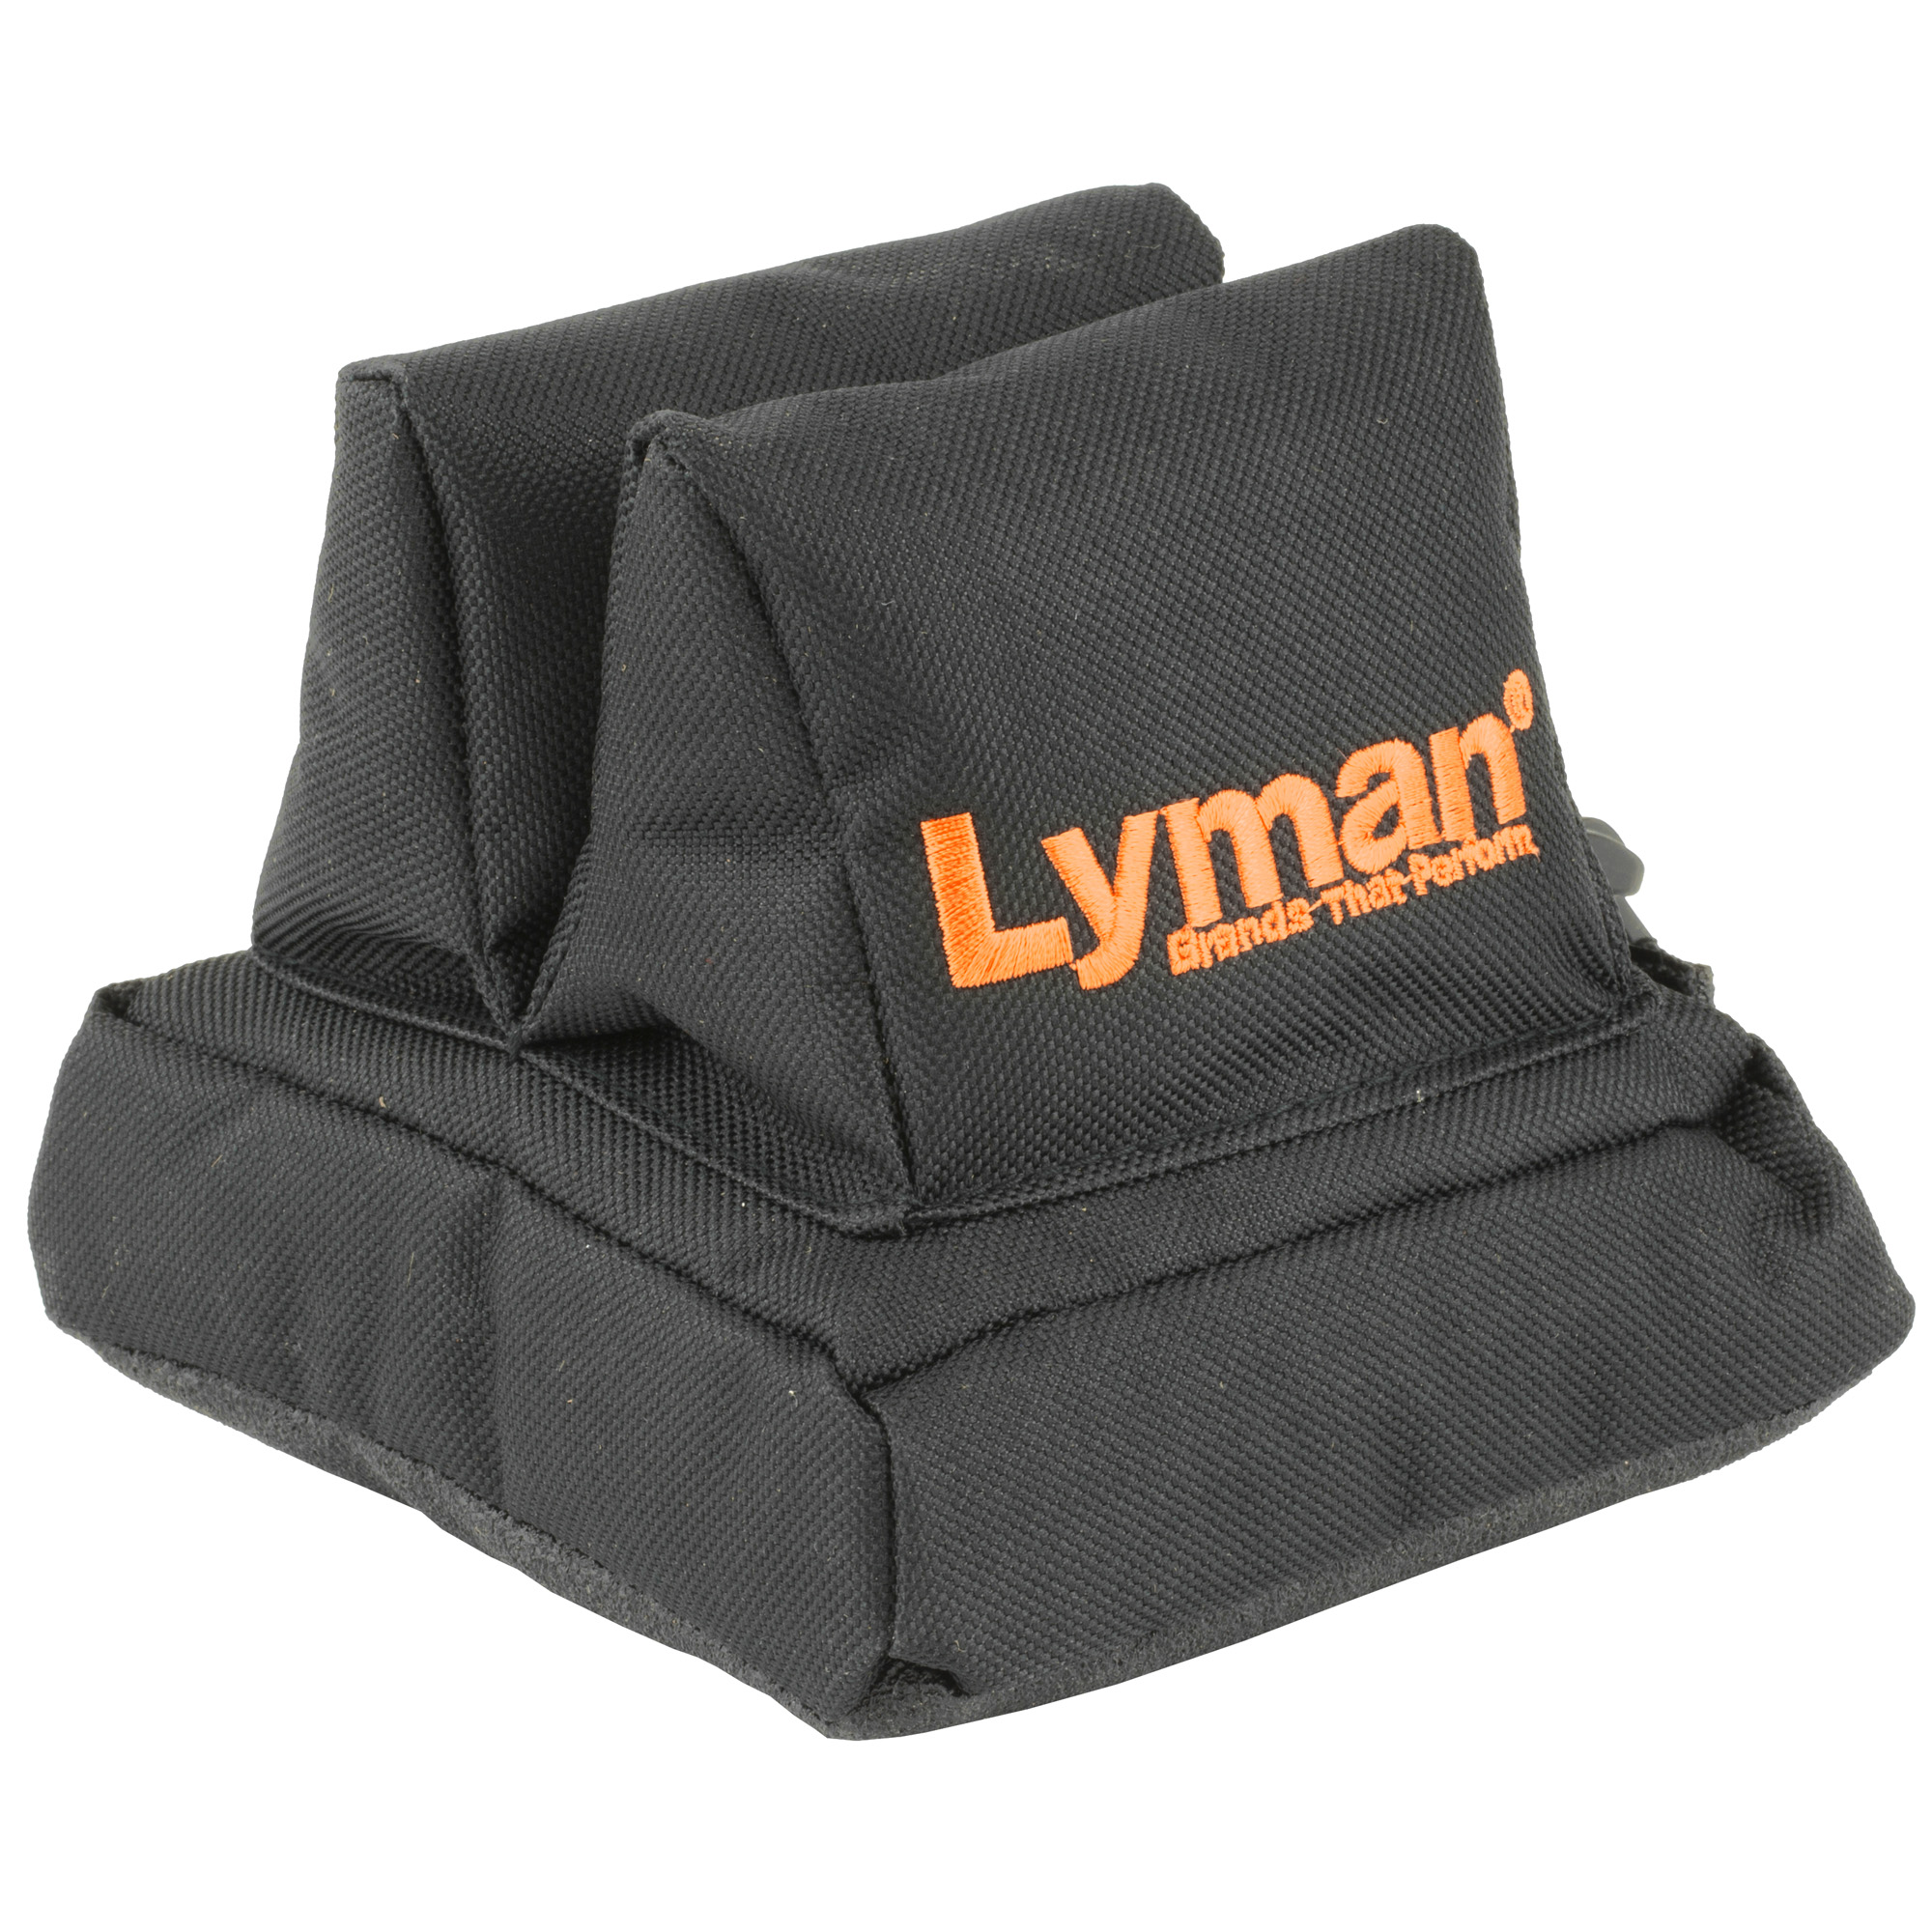 Lyman Crosshair Rear Shting Bag Fld